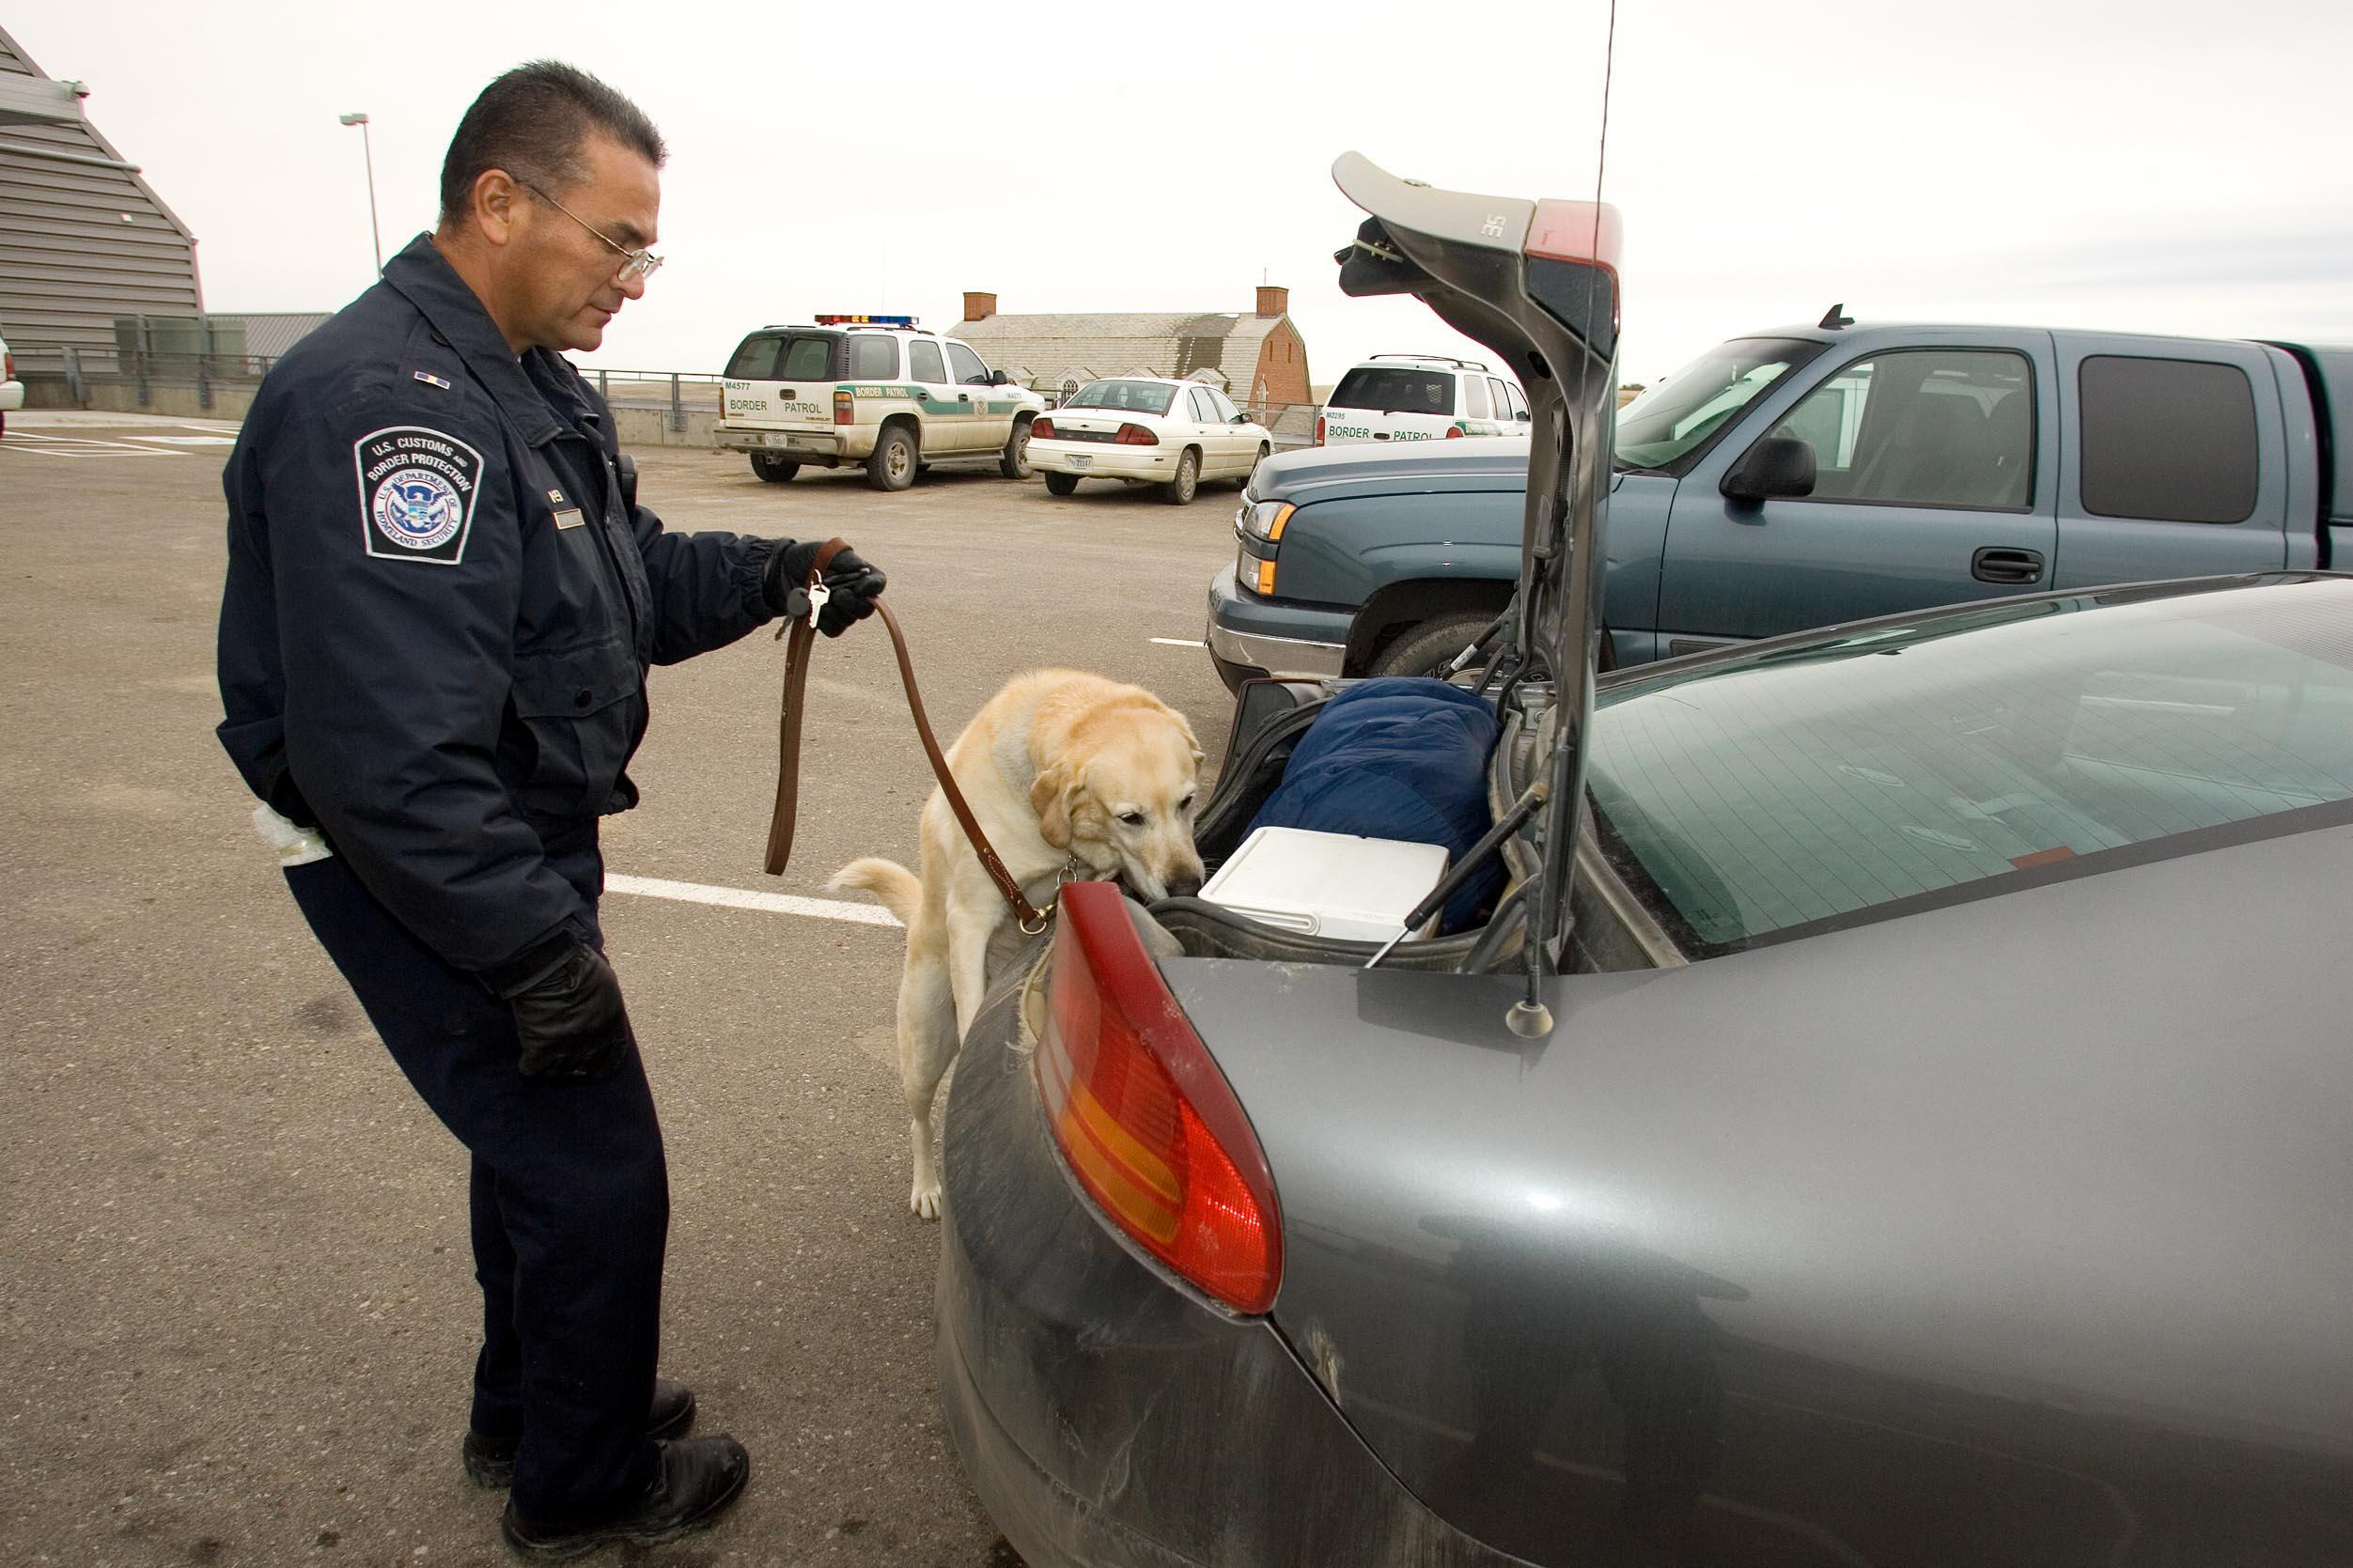 CBP K-9 officer runs a car selected for secondary exam.